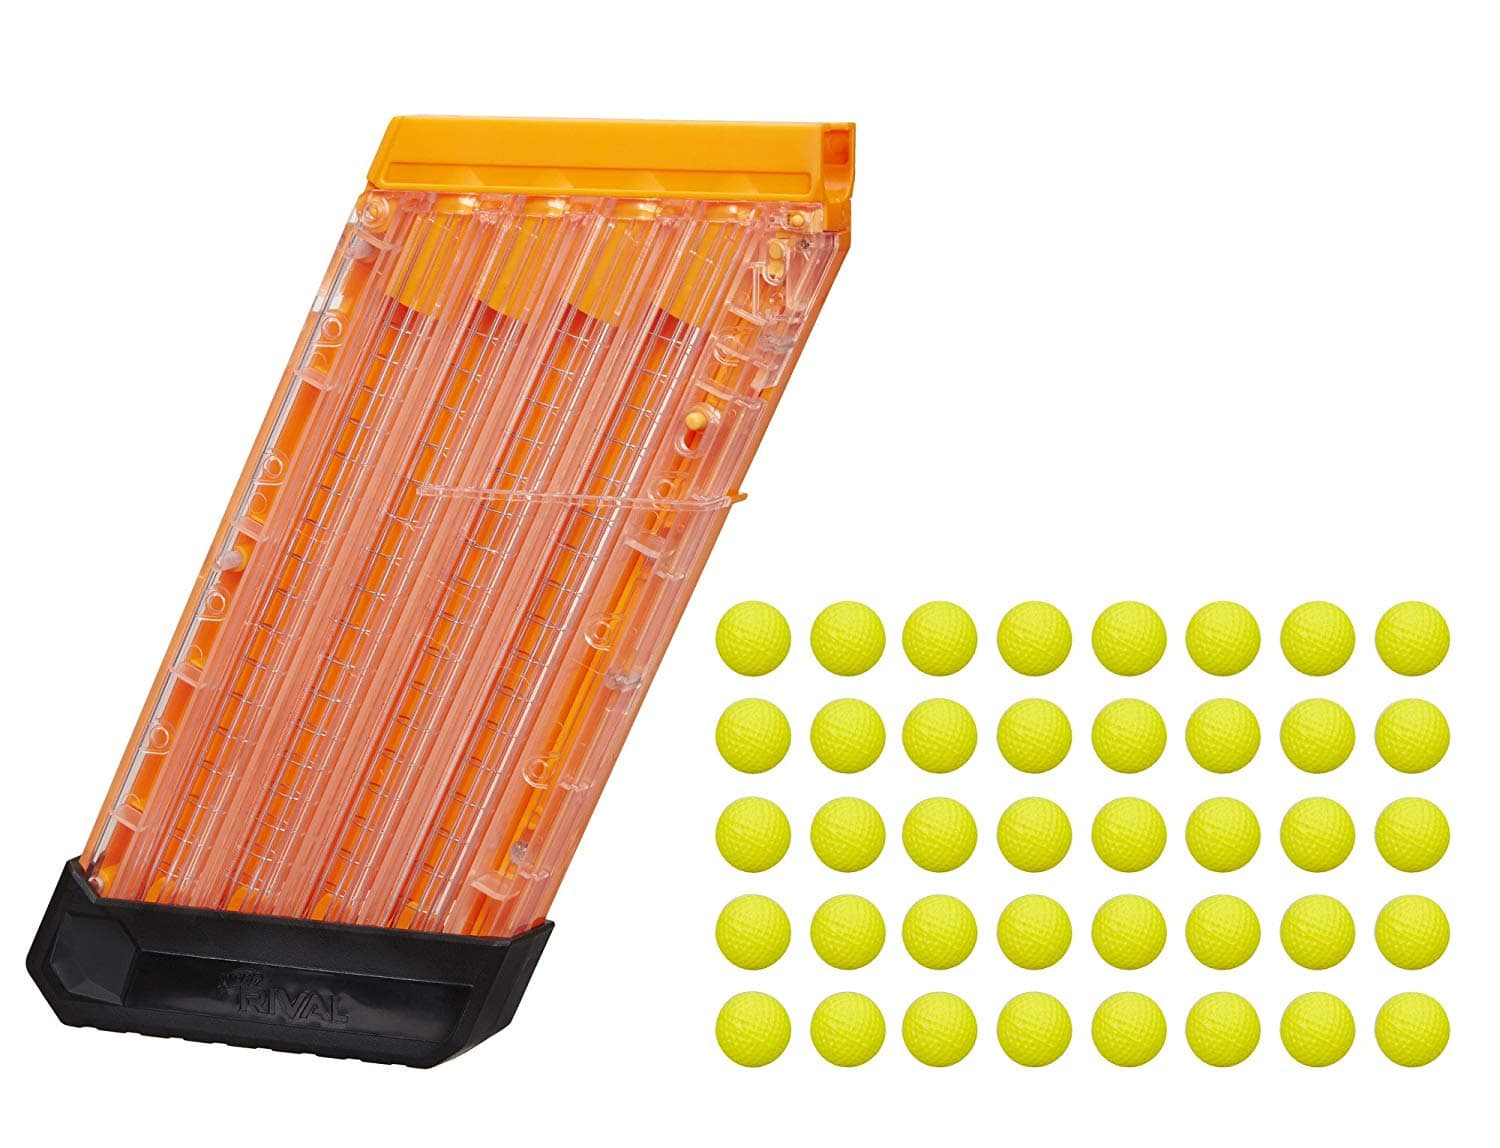 Nerf Rival Khaos 40-round Magazine with 40-rounds $10.99